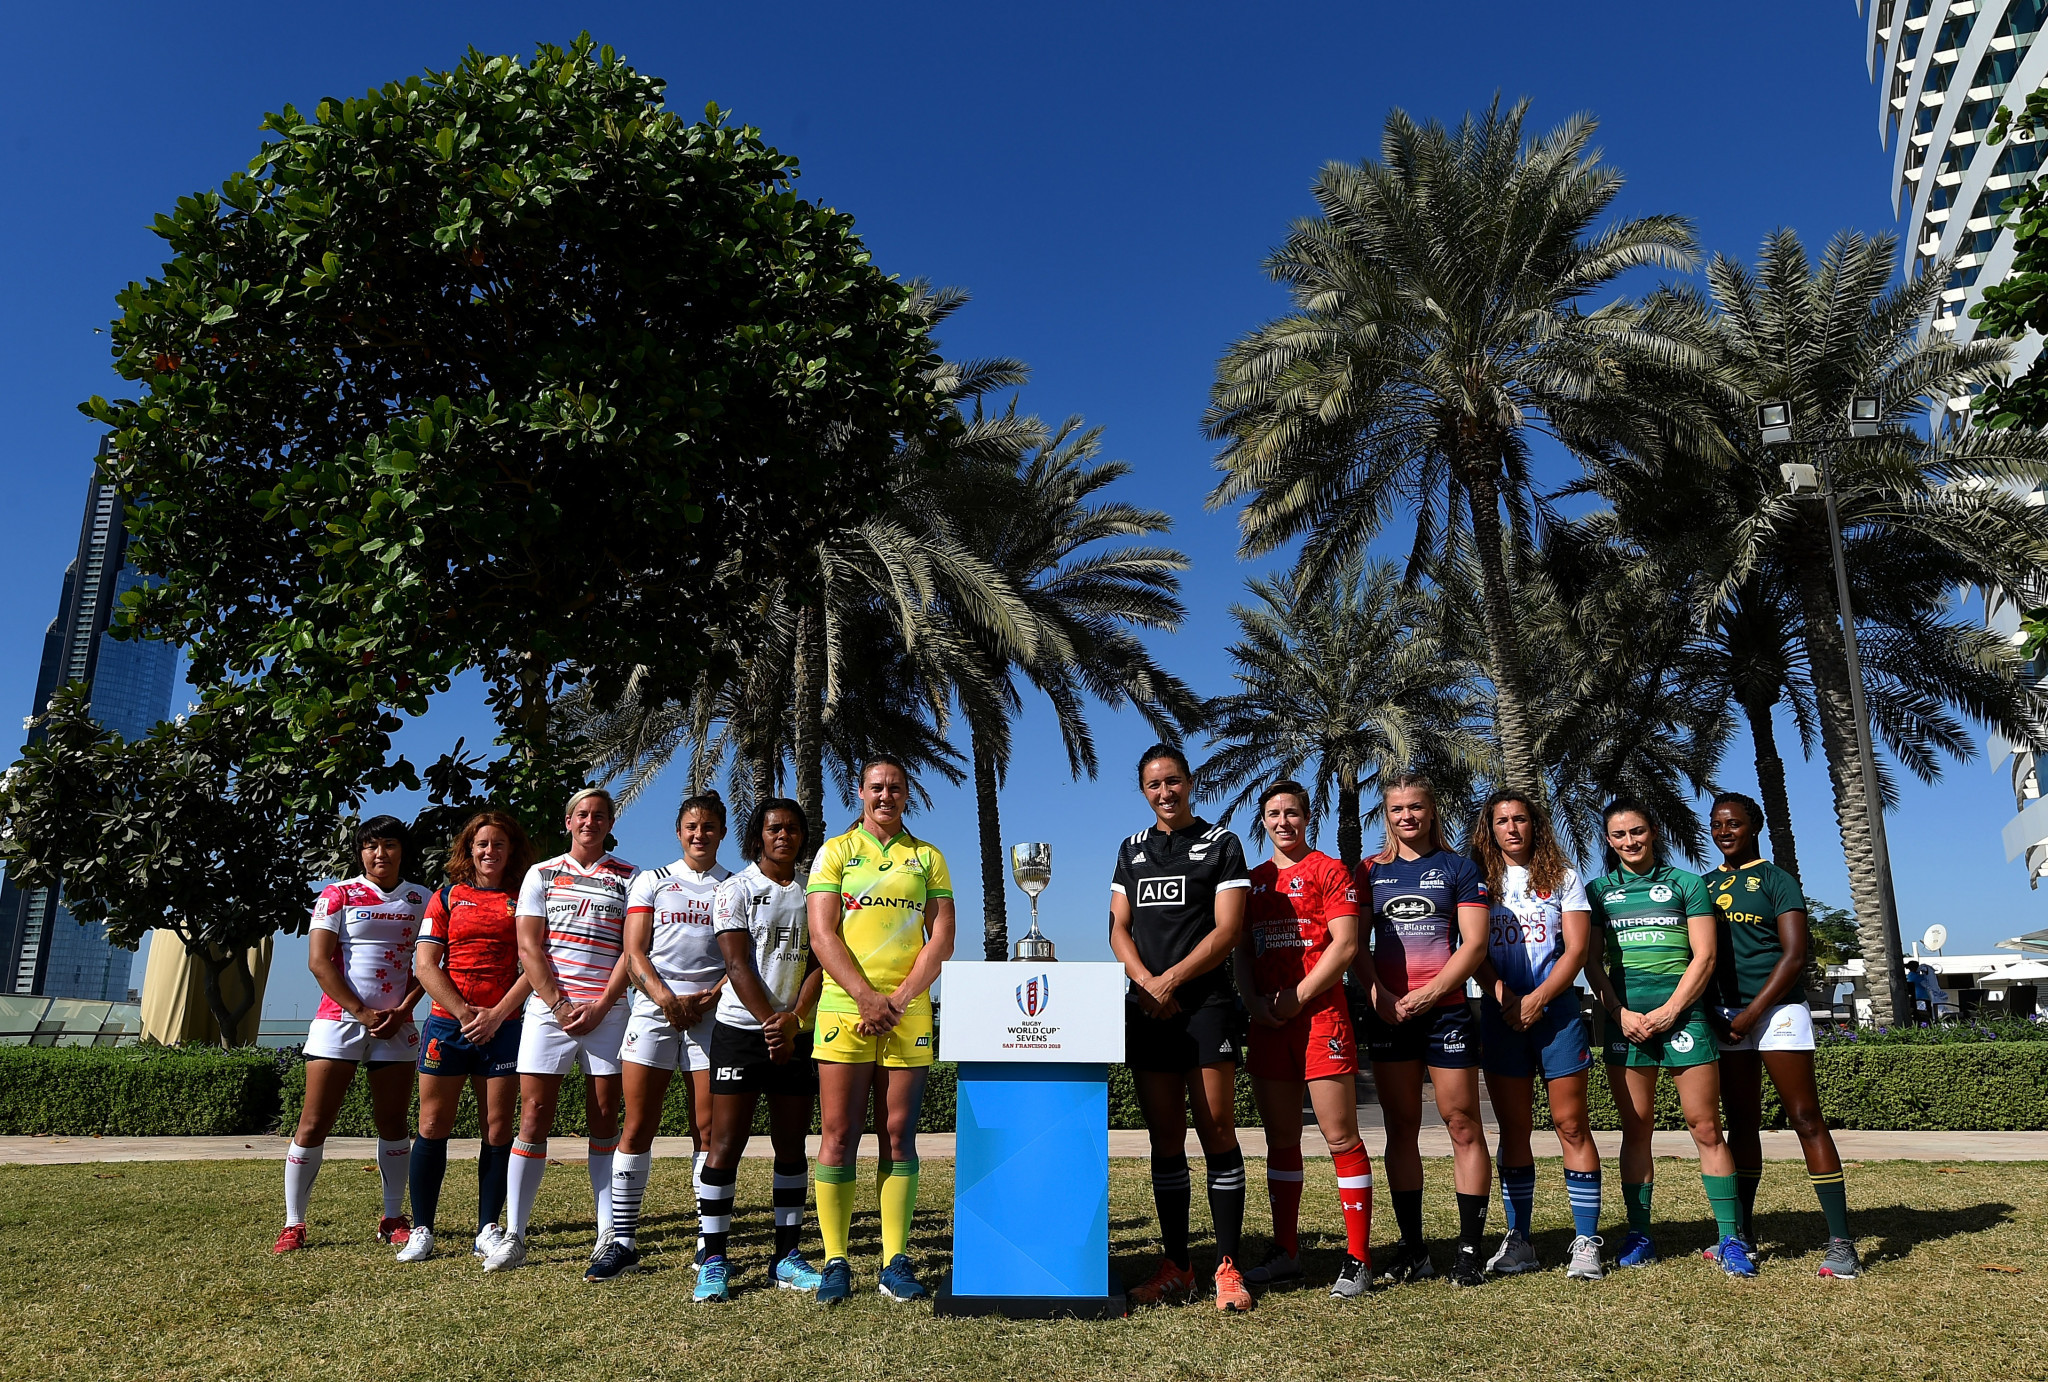 New Zealand and South Africa look to defend their Sevens crowns in Dubai